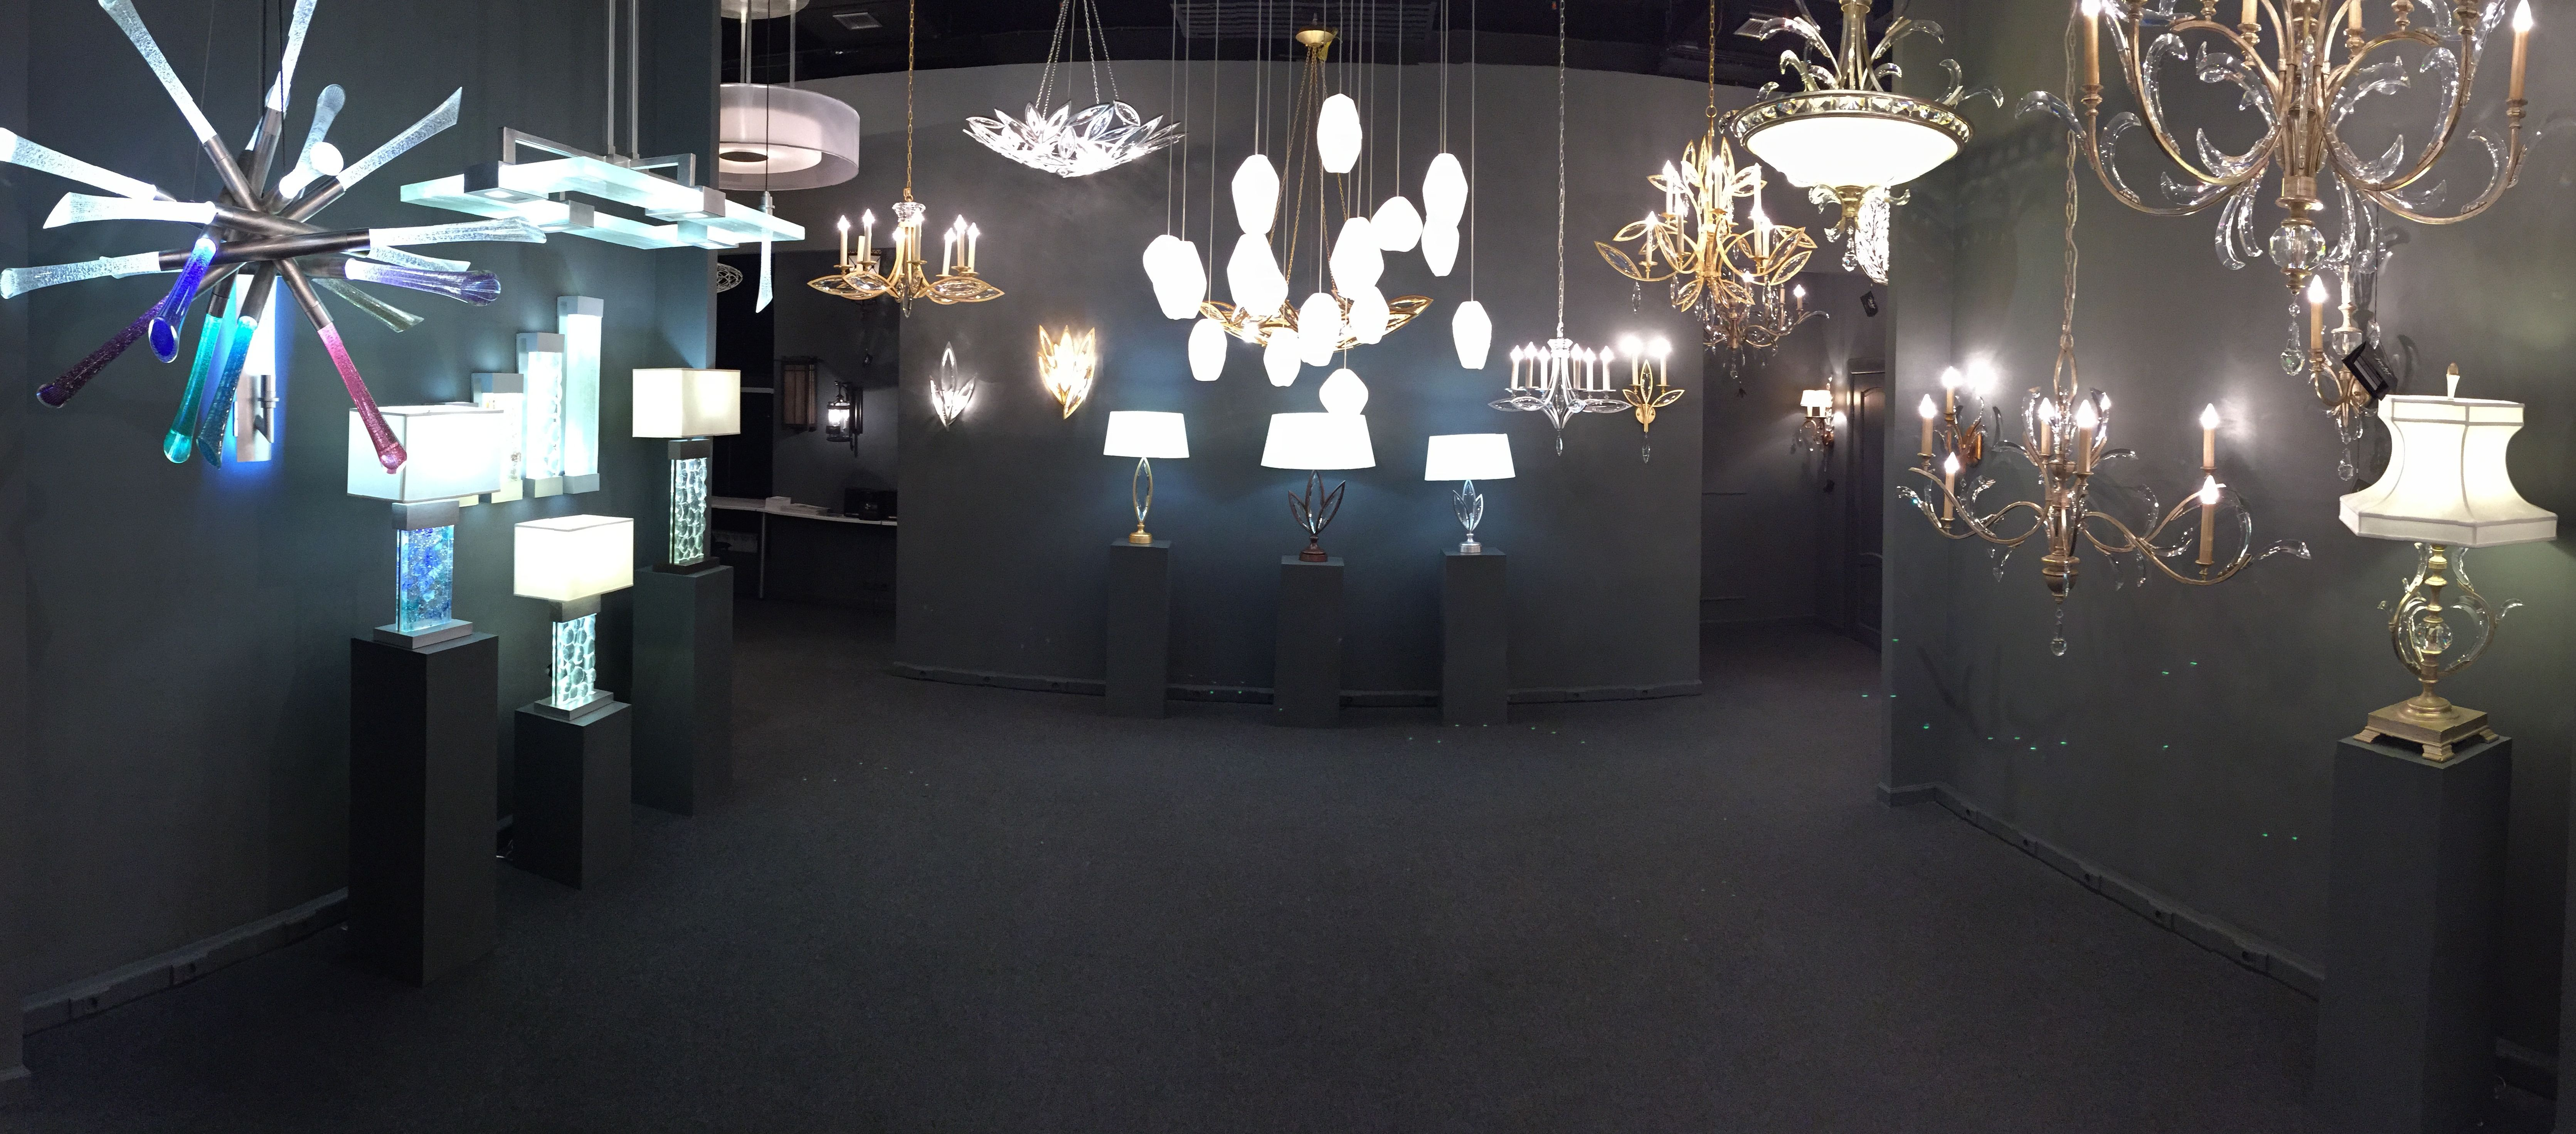 How beautiful does this showroom look fineartlamps miami lights how beautiful does this showroom look fineartlamps miami showroom luxury arubaitofo Gallery